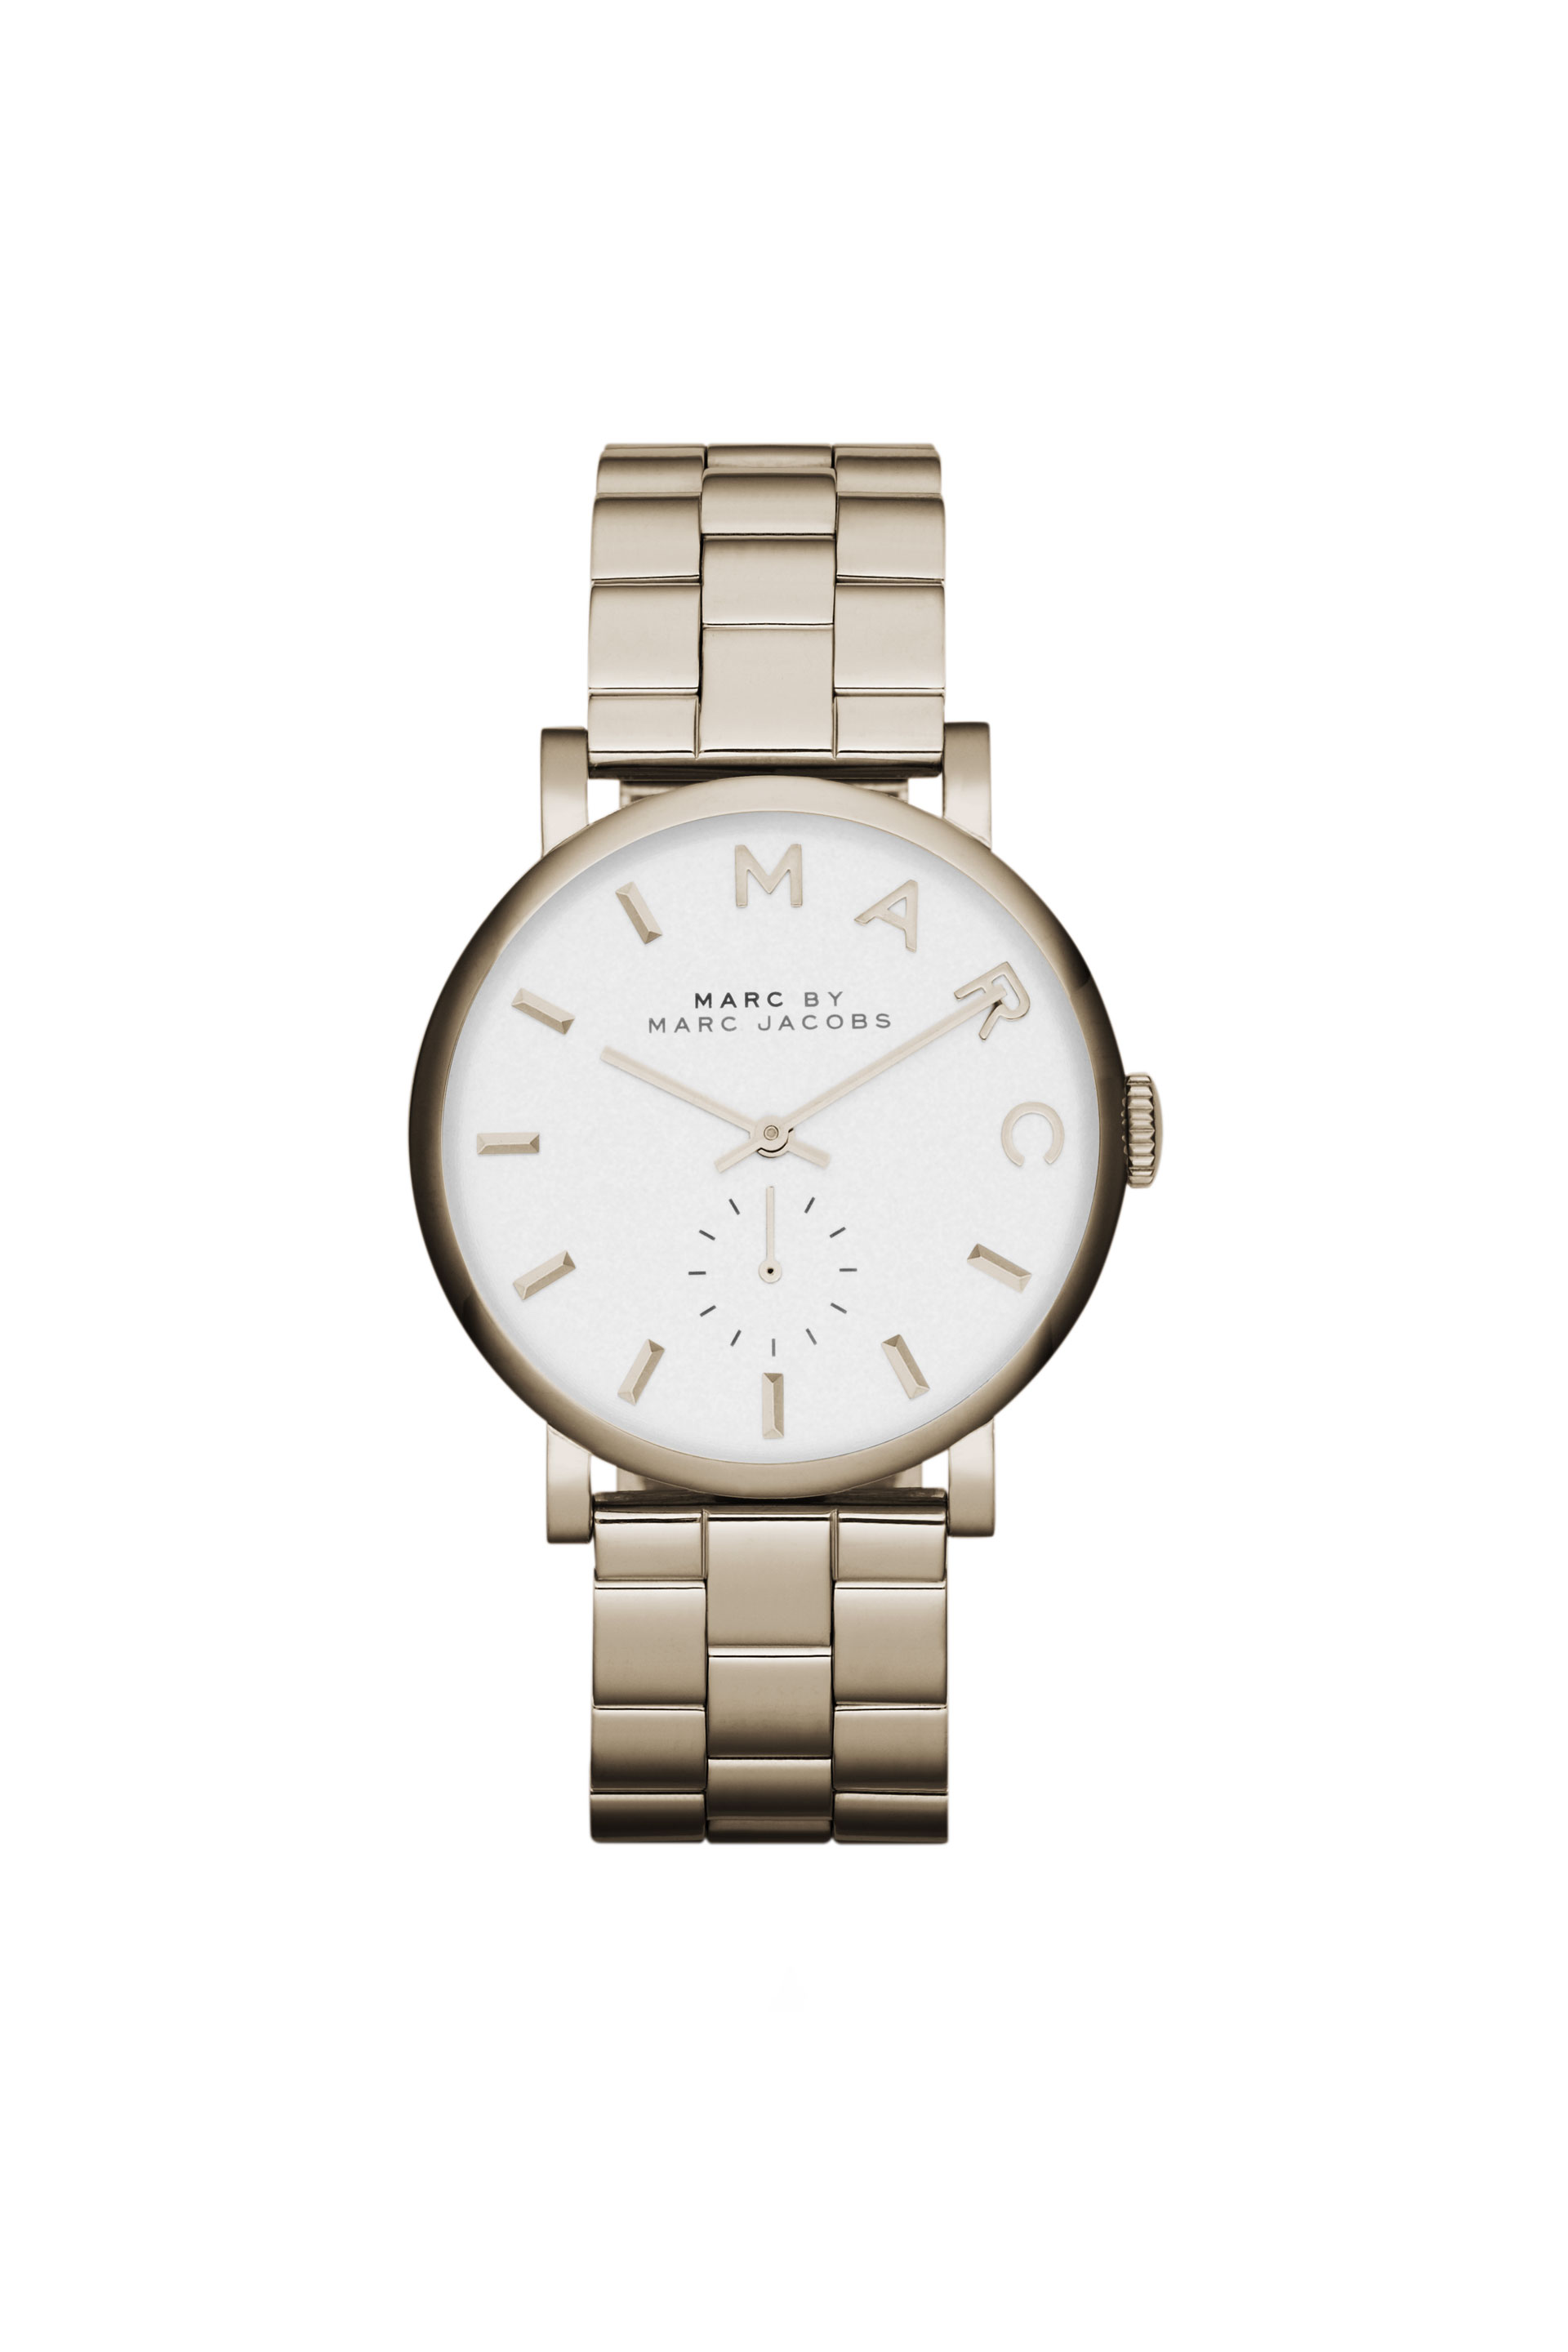 Baker 36.5MM - Watches - Shop marcjacobs.com - Marc Jacobs